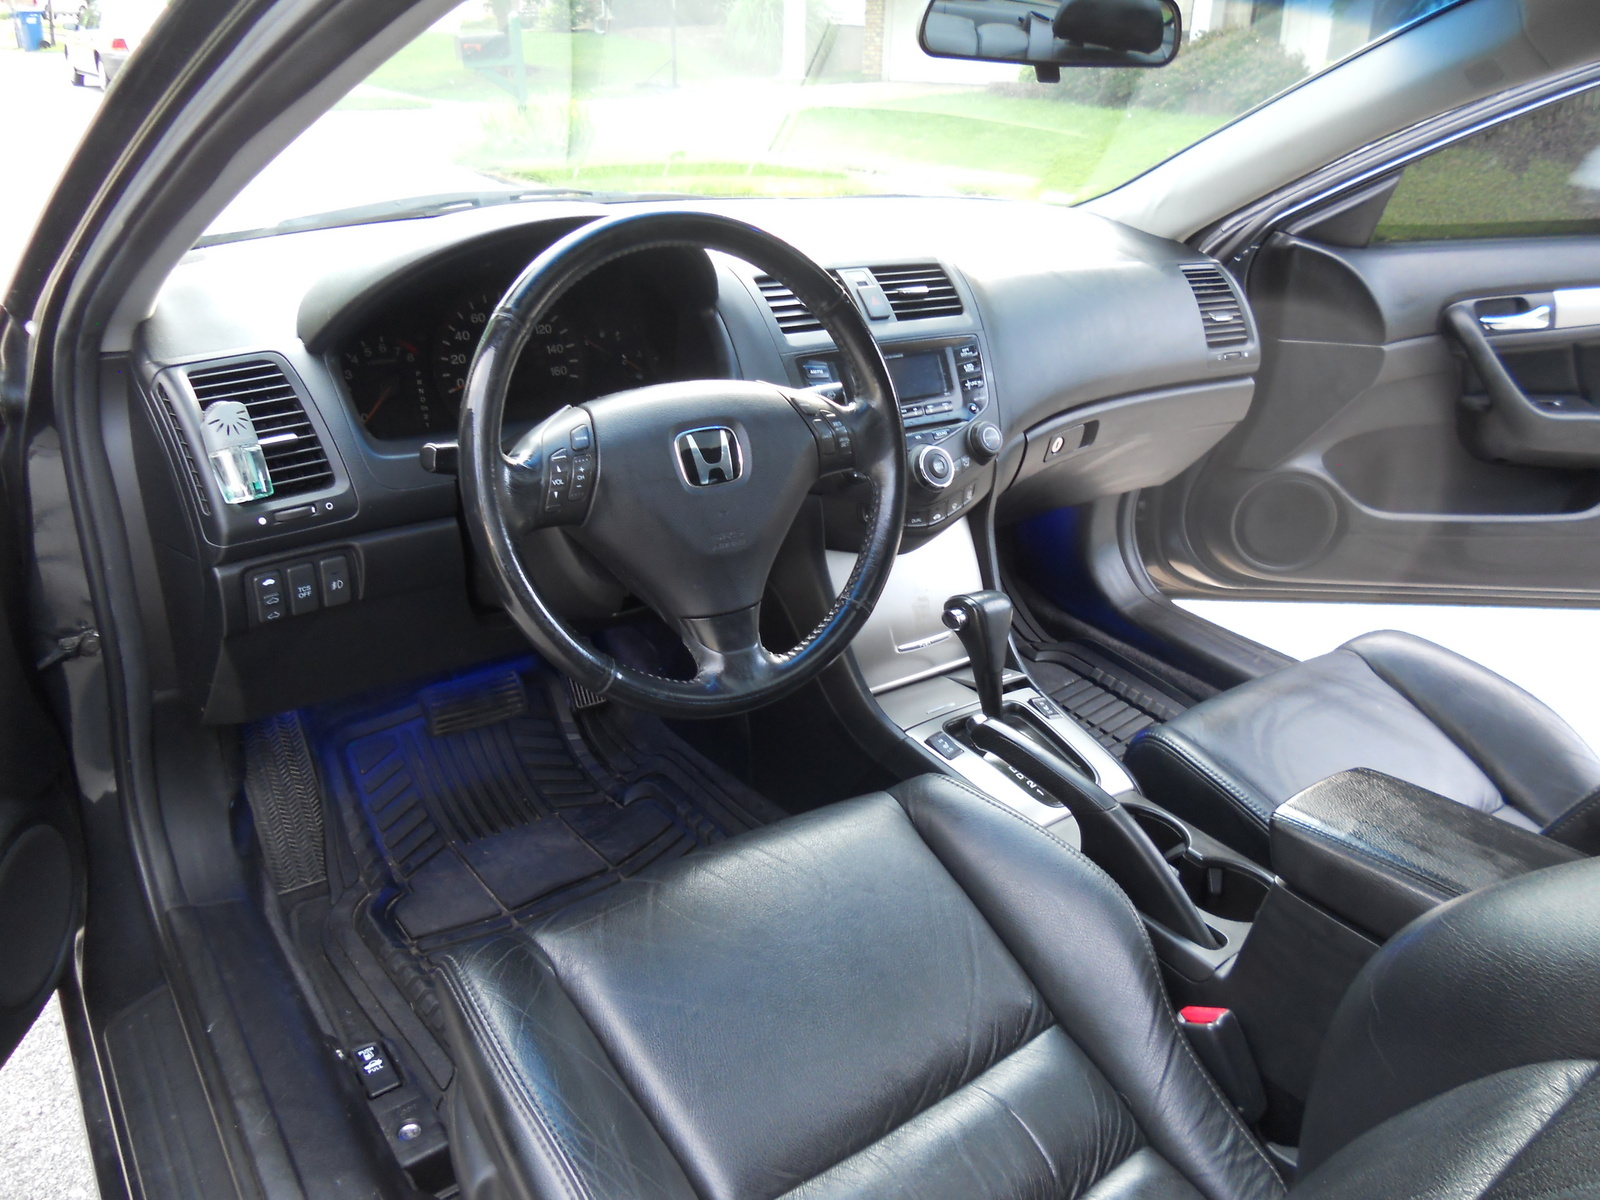 2005 honda accord interior pictures cargurus. Black Bedroom Furniture Sets. Home Design Ideas